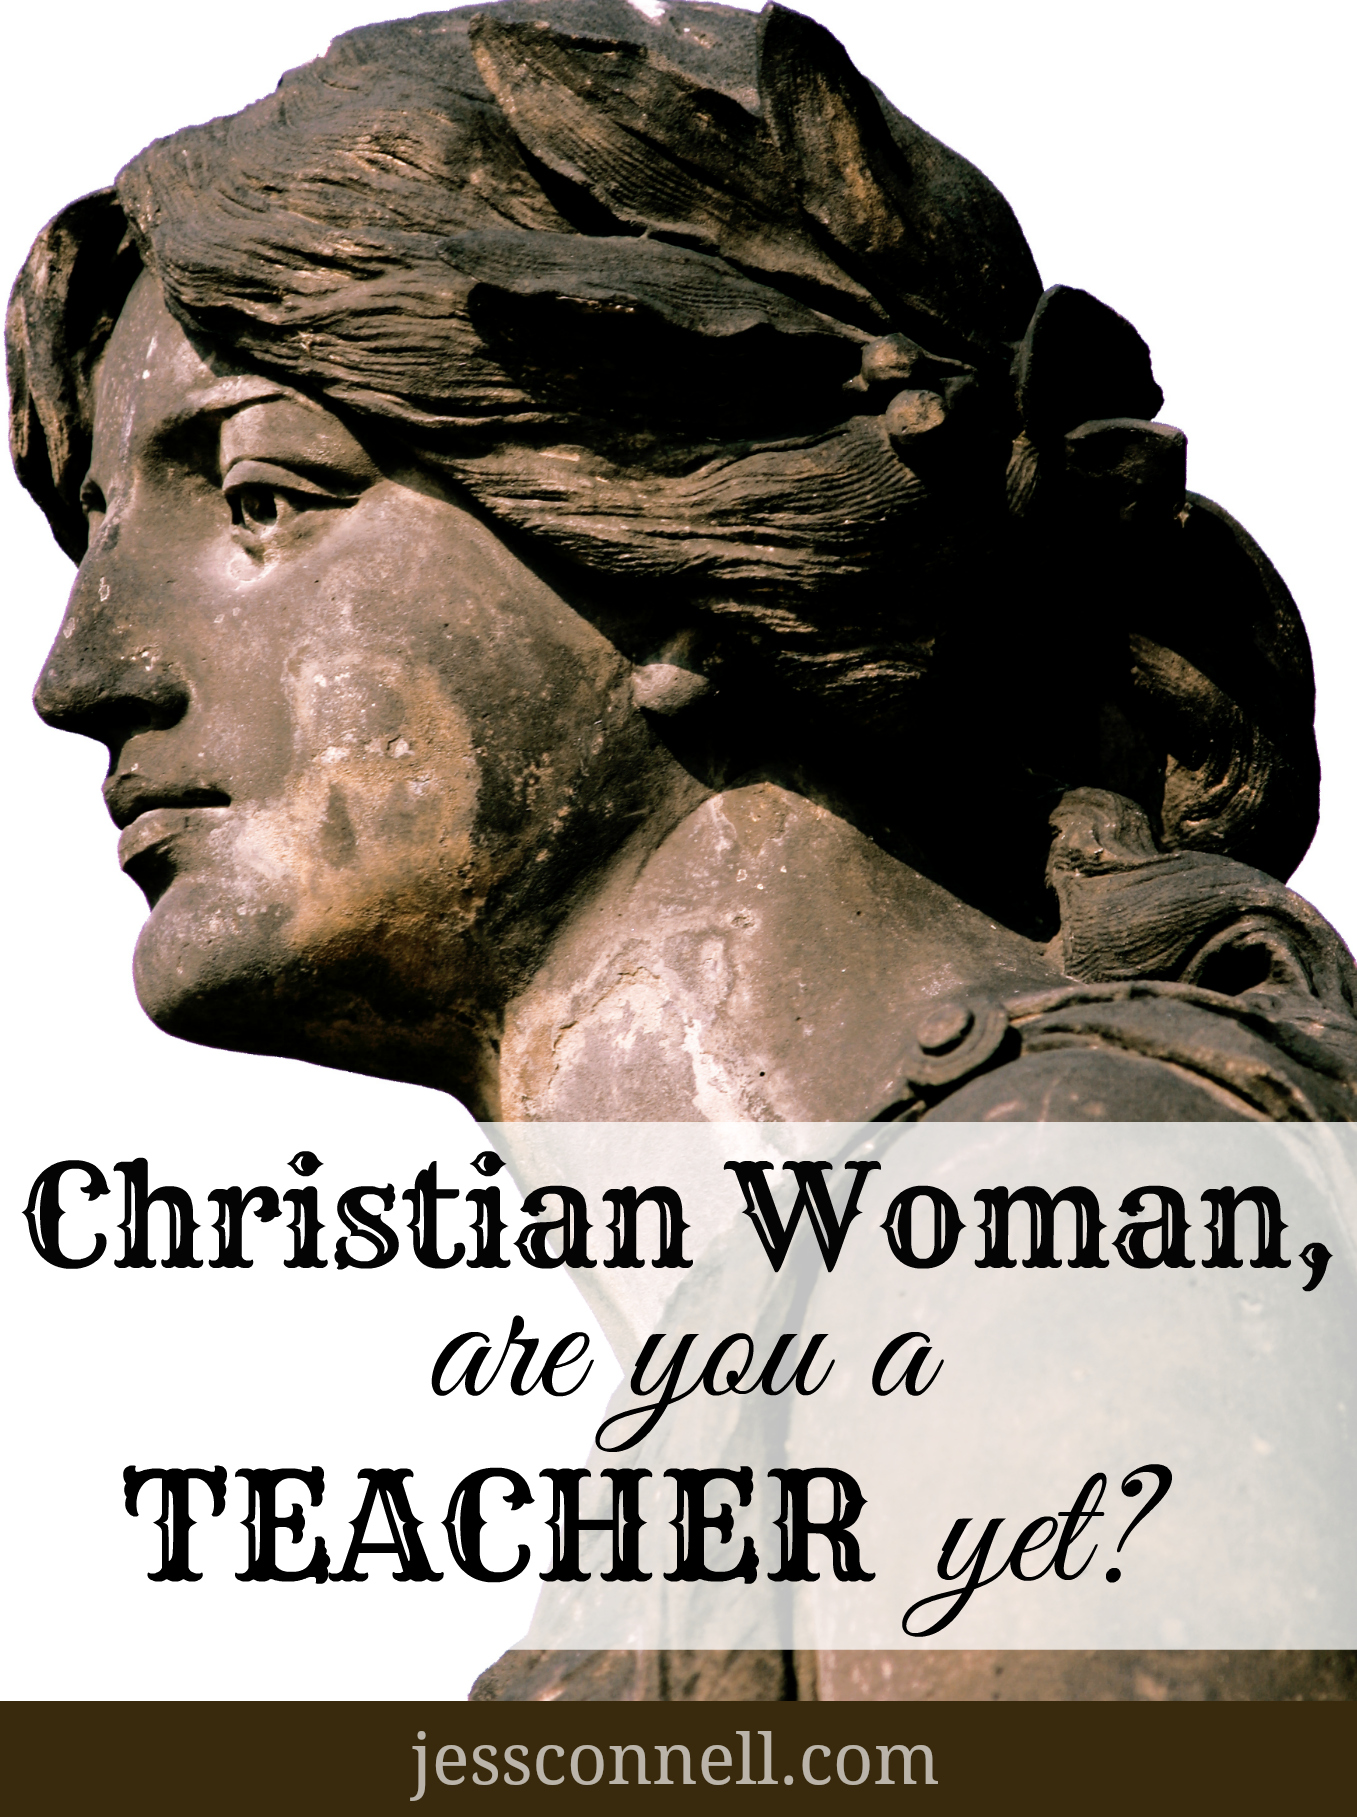 Christian Woman, Are You a TEACHER Yet? // jessconnell.com